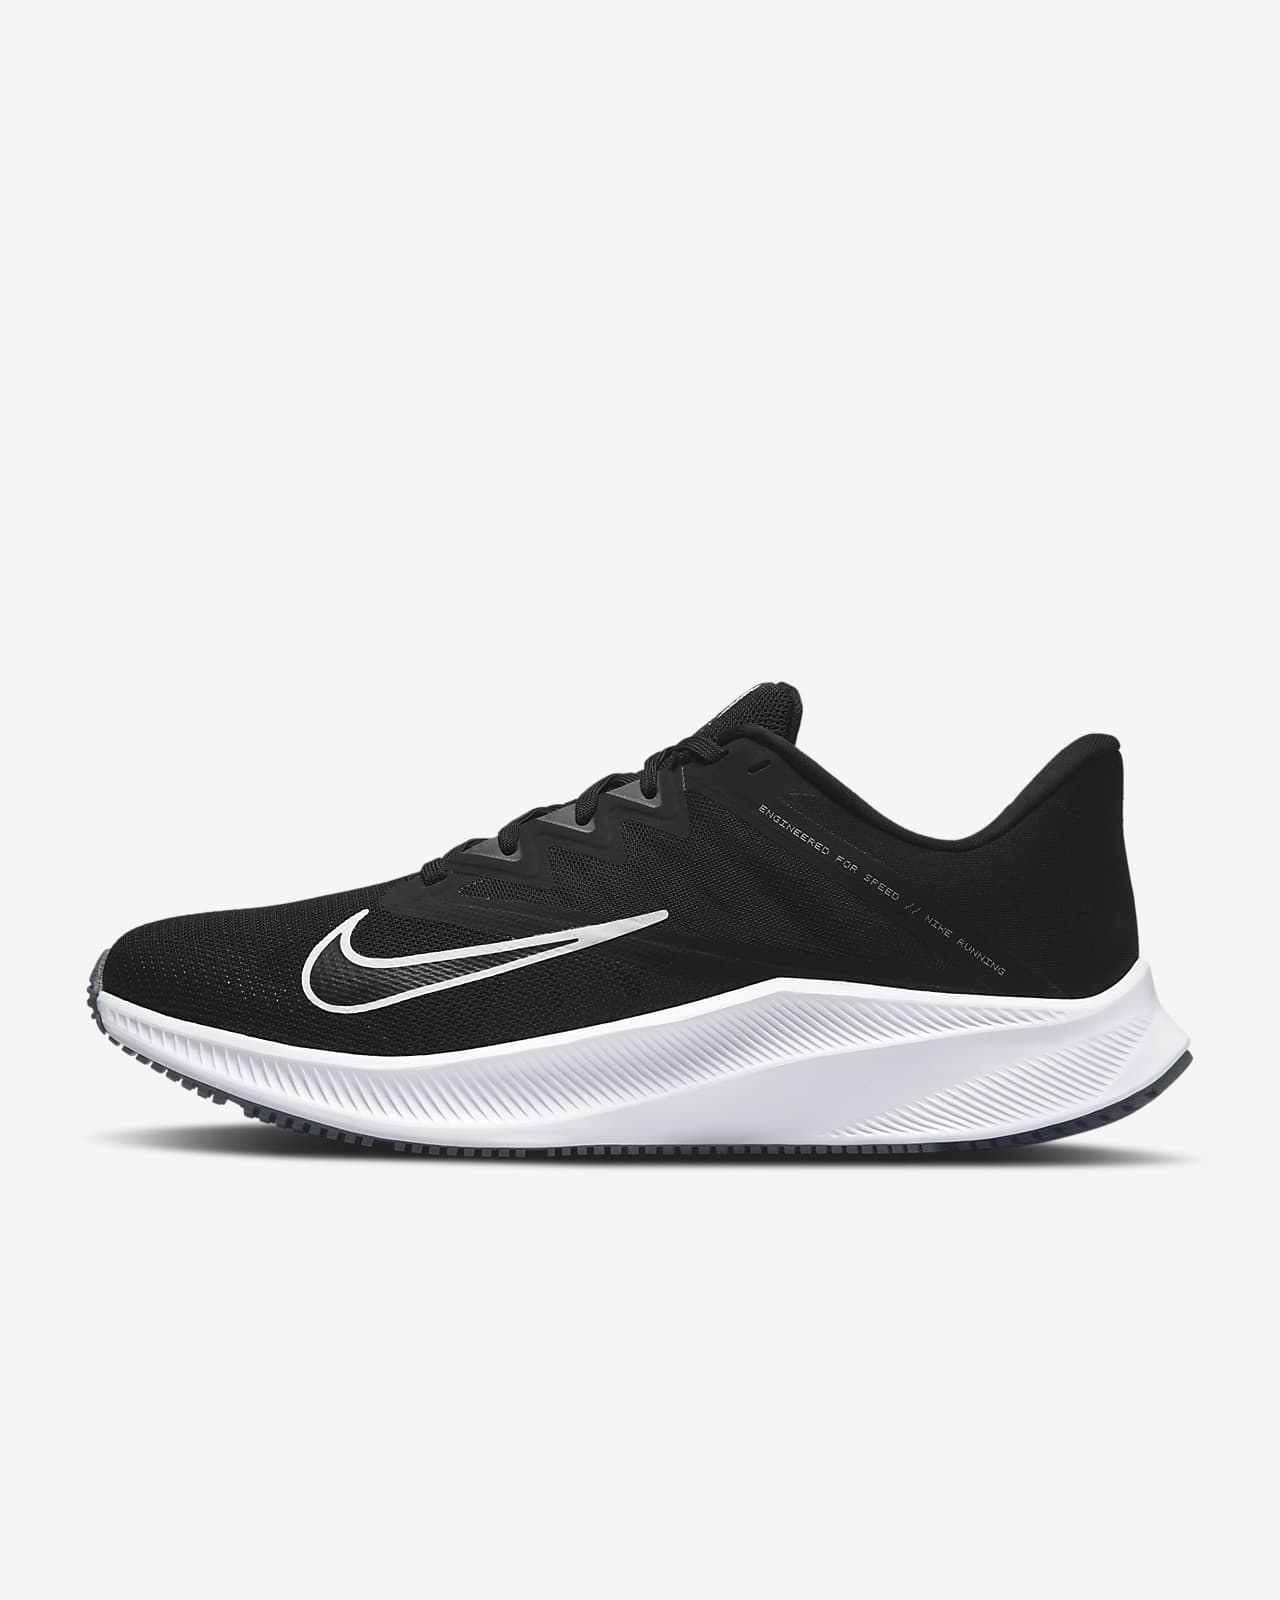 Nike Quest 3 Men's Road Running Shoes